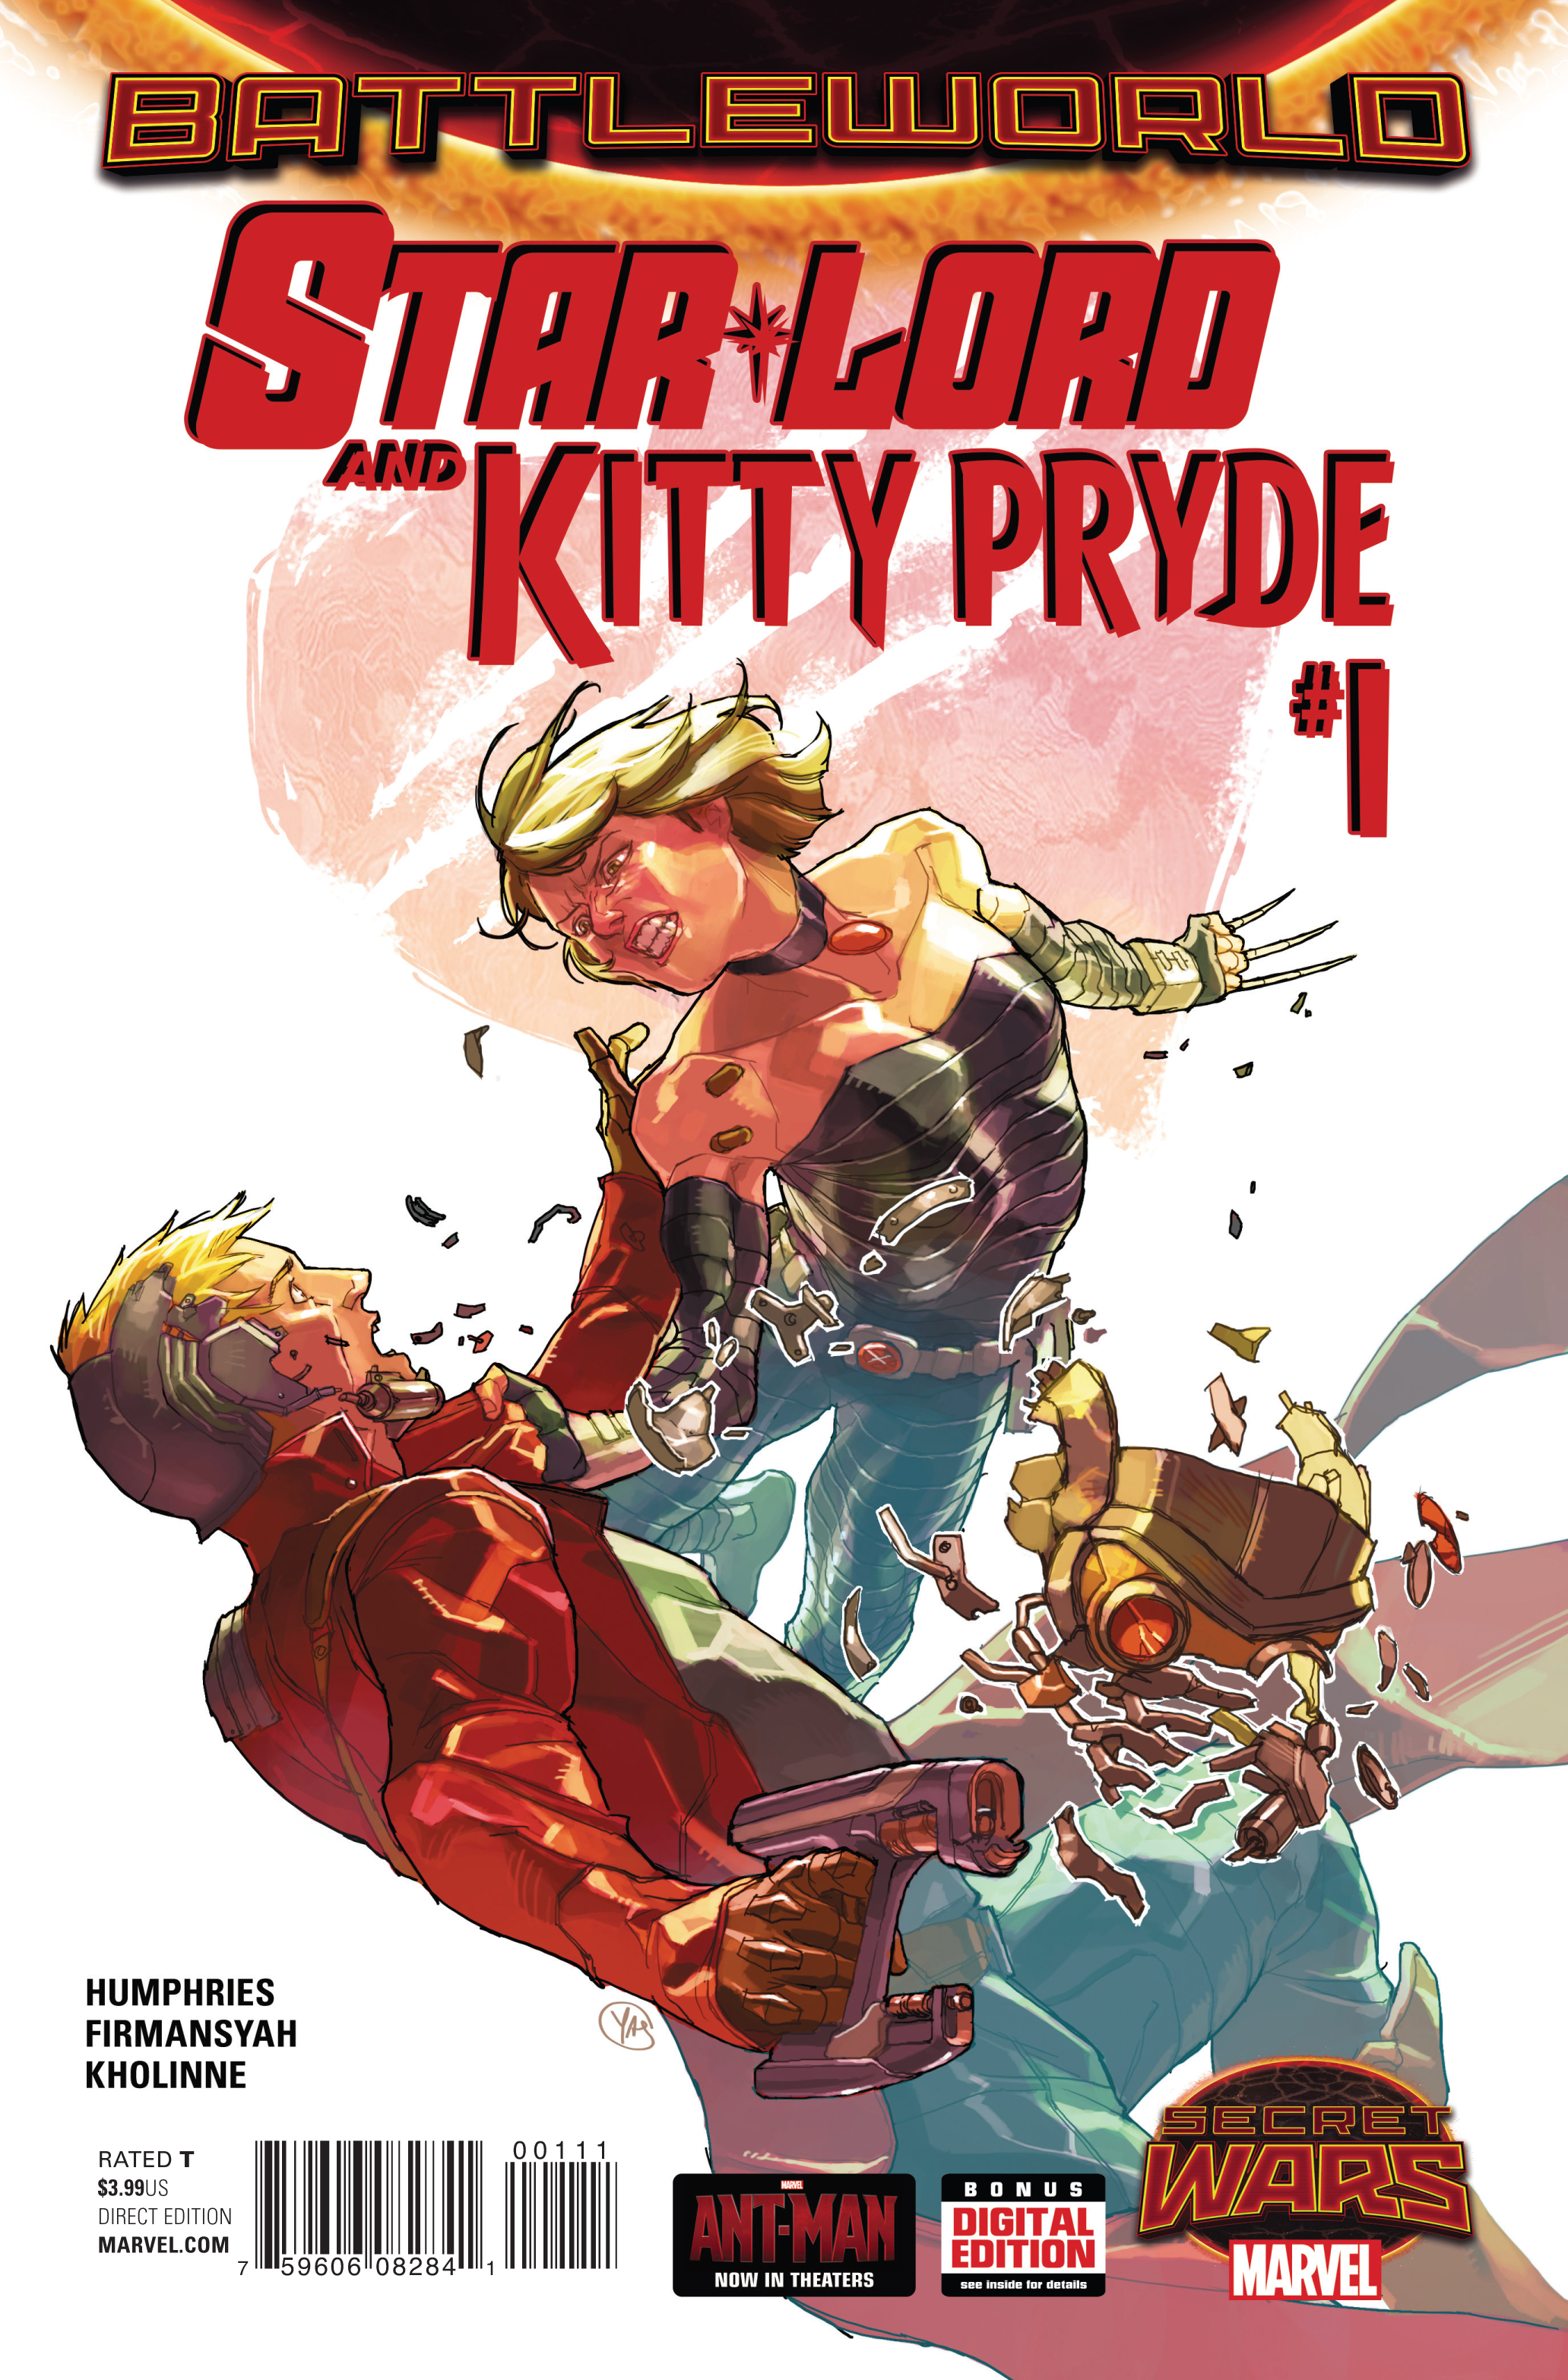 STAR-LORD AND KITTY PRYDE #1 SWA